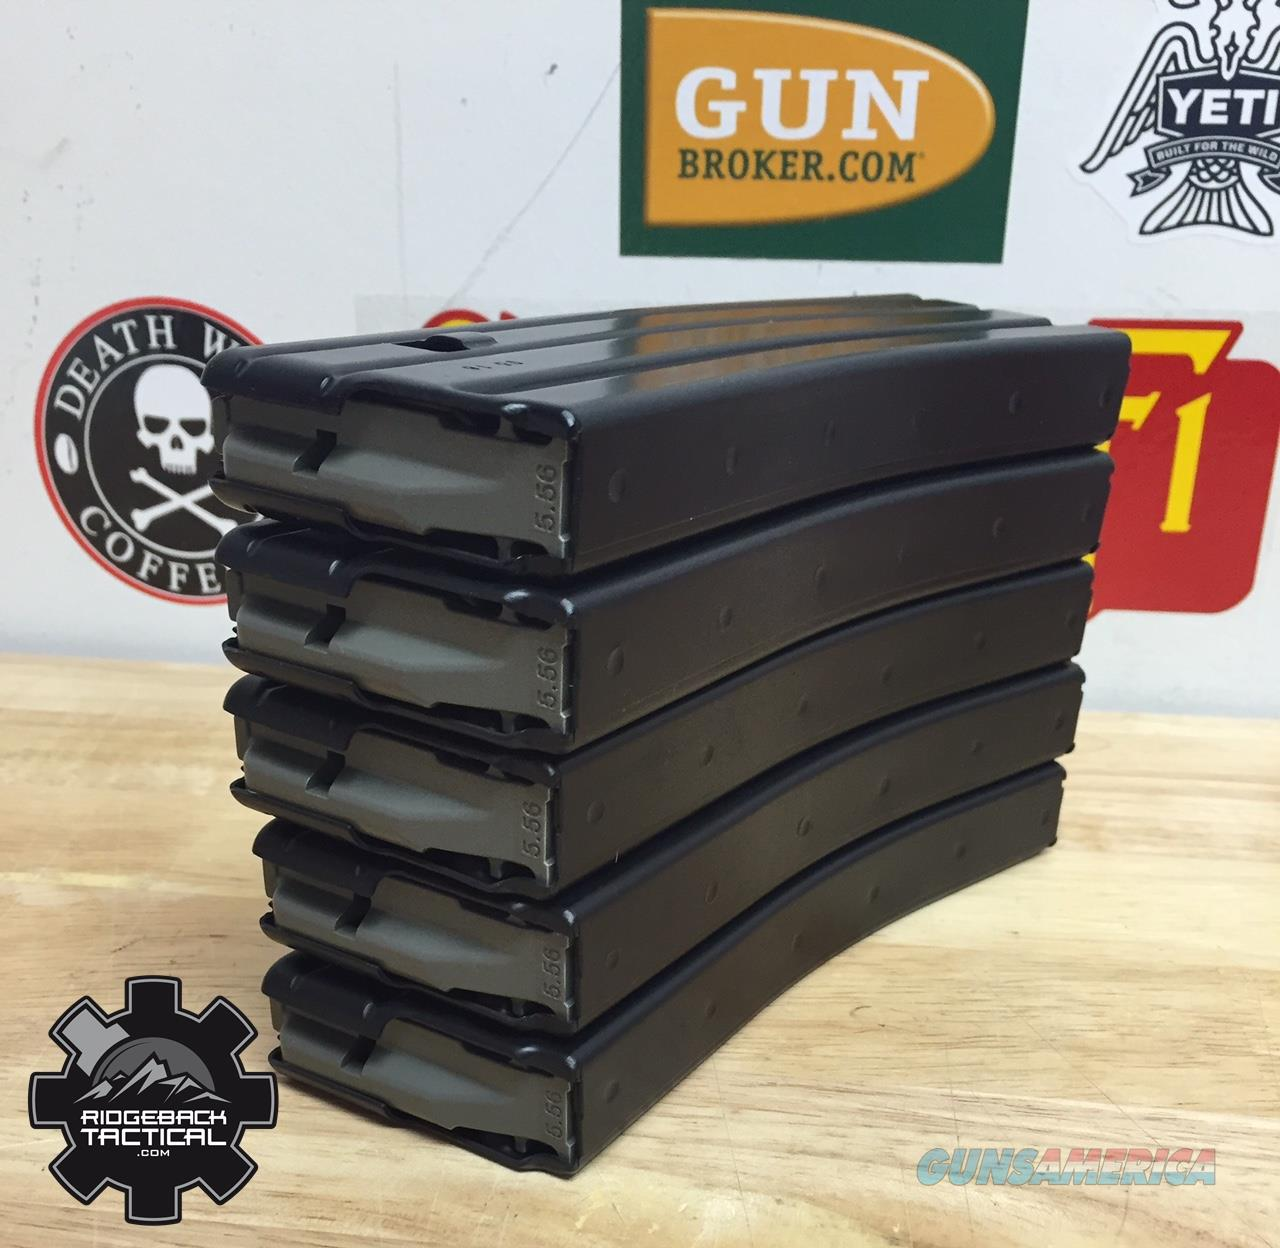 5 Pack AR 5.56 30 Round Black Teflon Mags Milspec Magpul D&H PSA Bravo Company FREE SHIPPING! NO CC FEES  Non-Guns > Magazines & Clips > Rifle Magazines > AR-15 Type